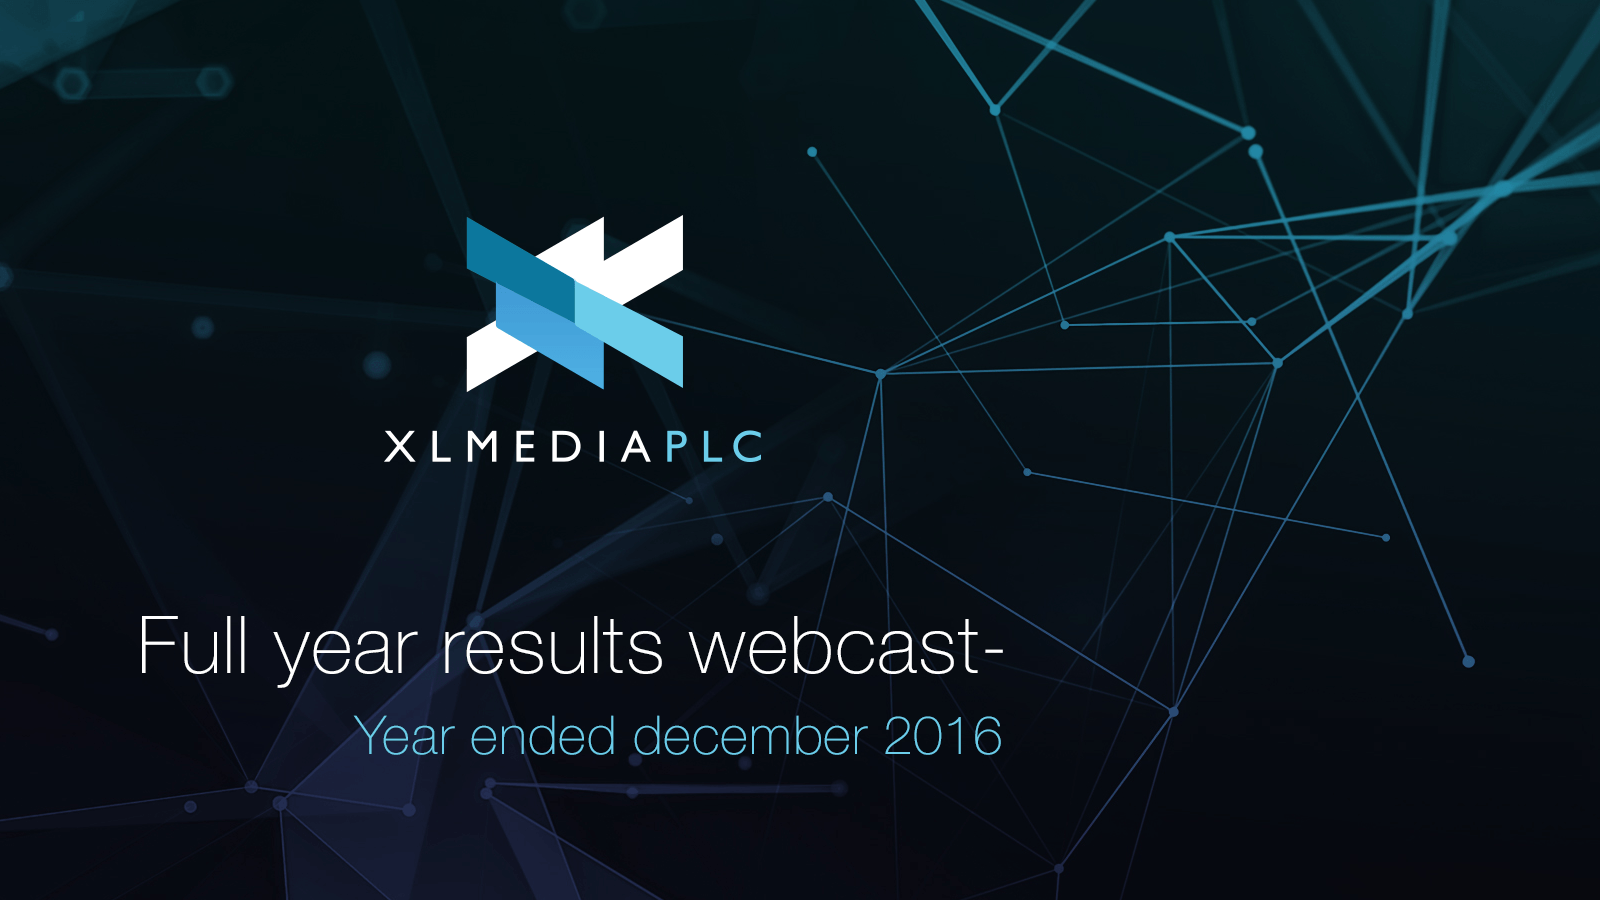 Full year results webcast for 2016